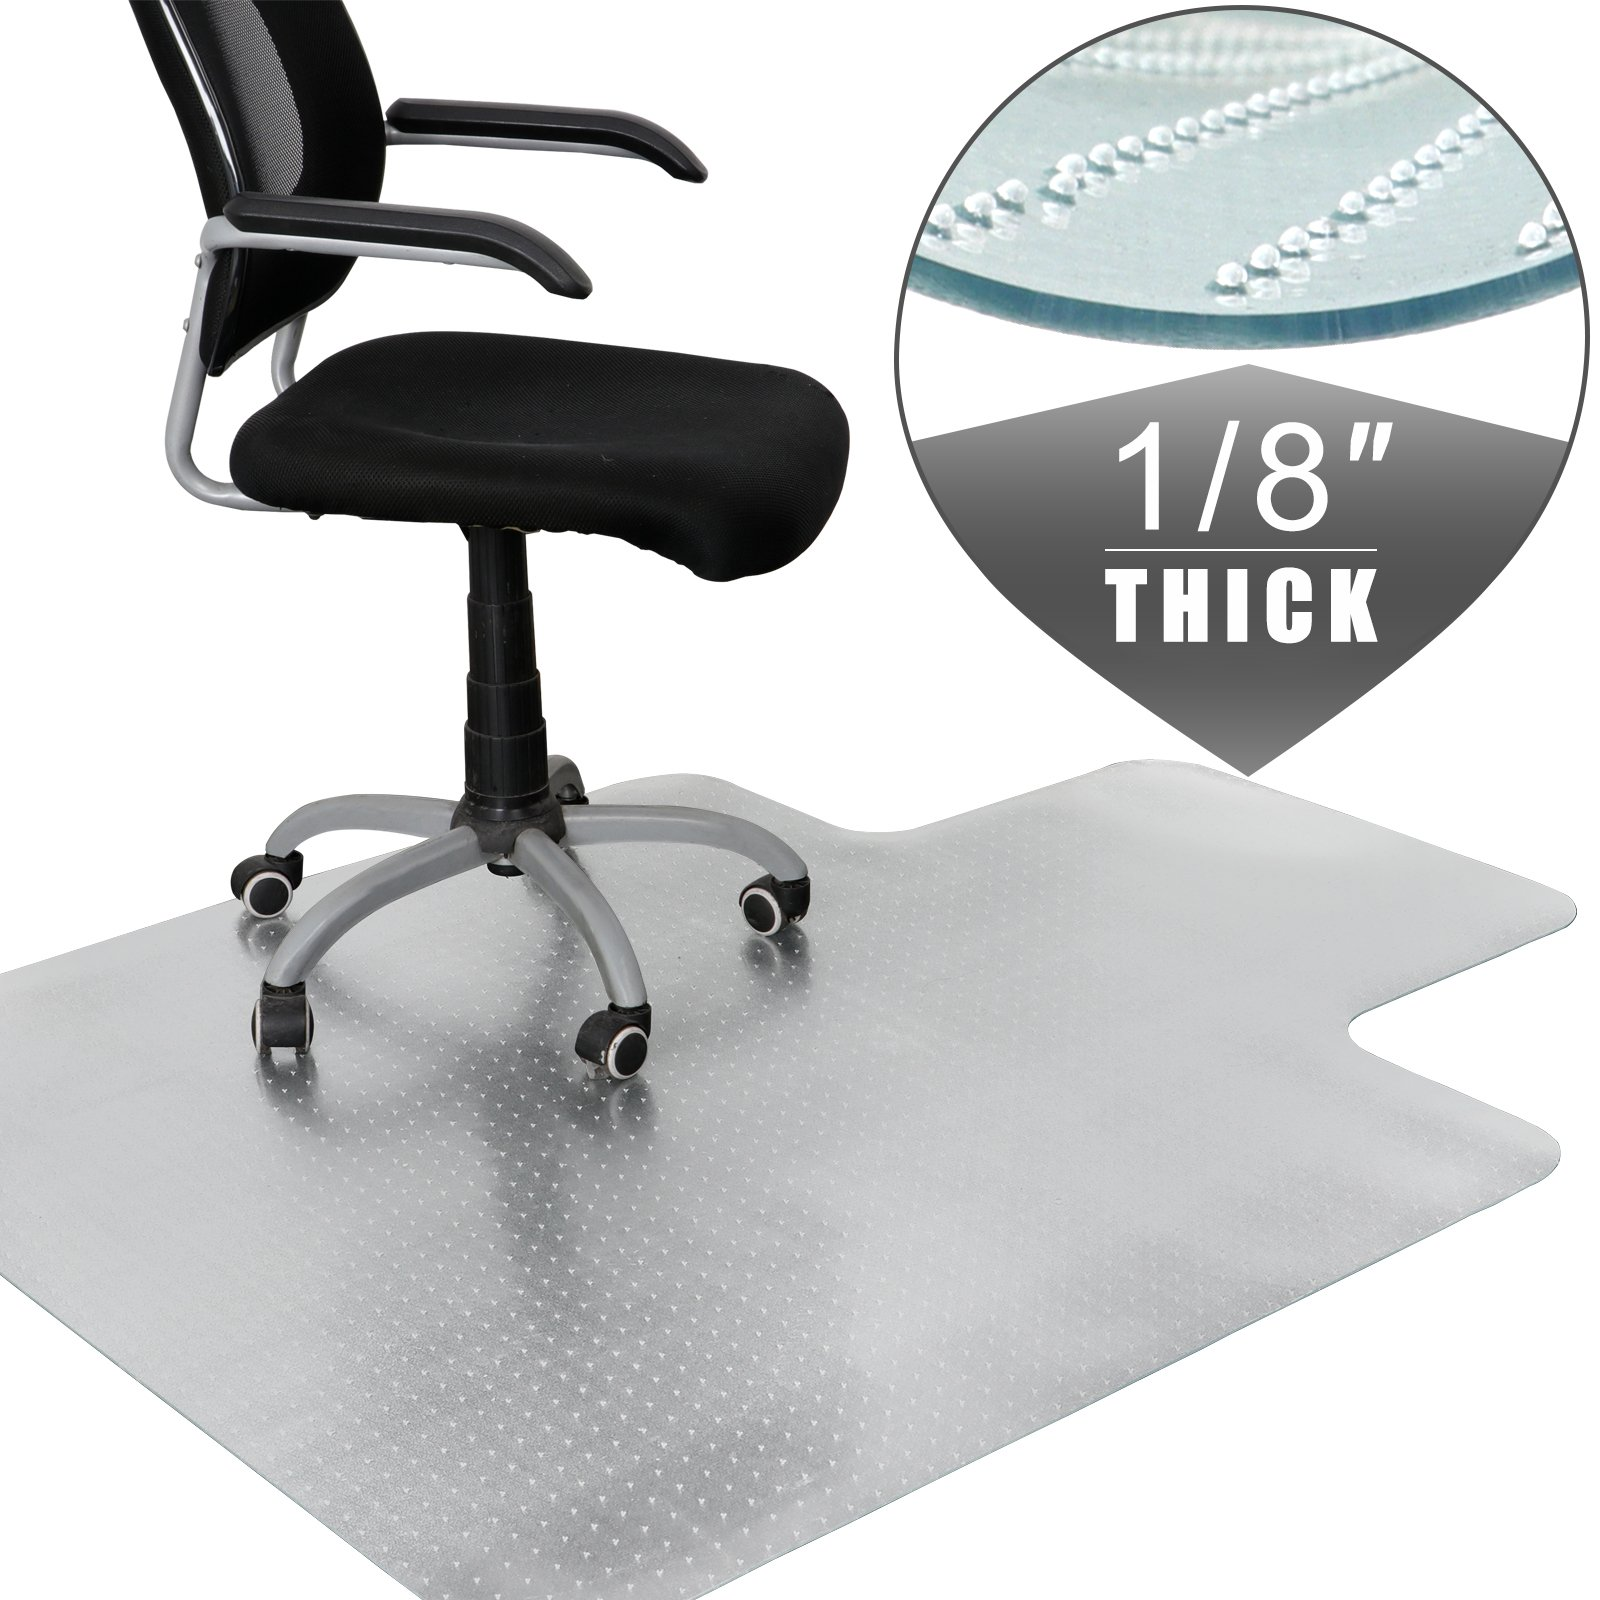 F2C 60-Inch by 48-Inch 1/8''(3MM) Thickness Plastic Floor Office Chair Mat 60'' X 48'' Clear Protector Office Chair Rug Carpet Floor Computer Desk 1520mm x 1220mm